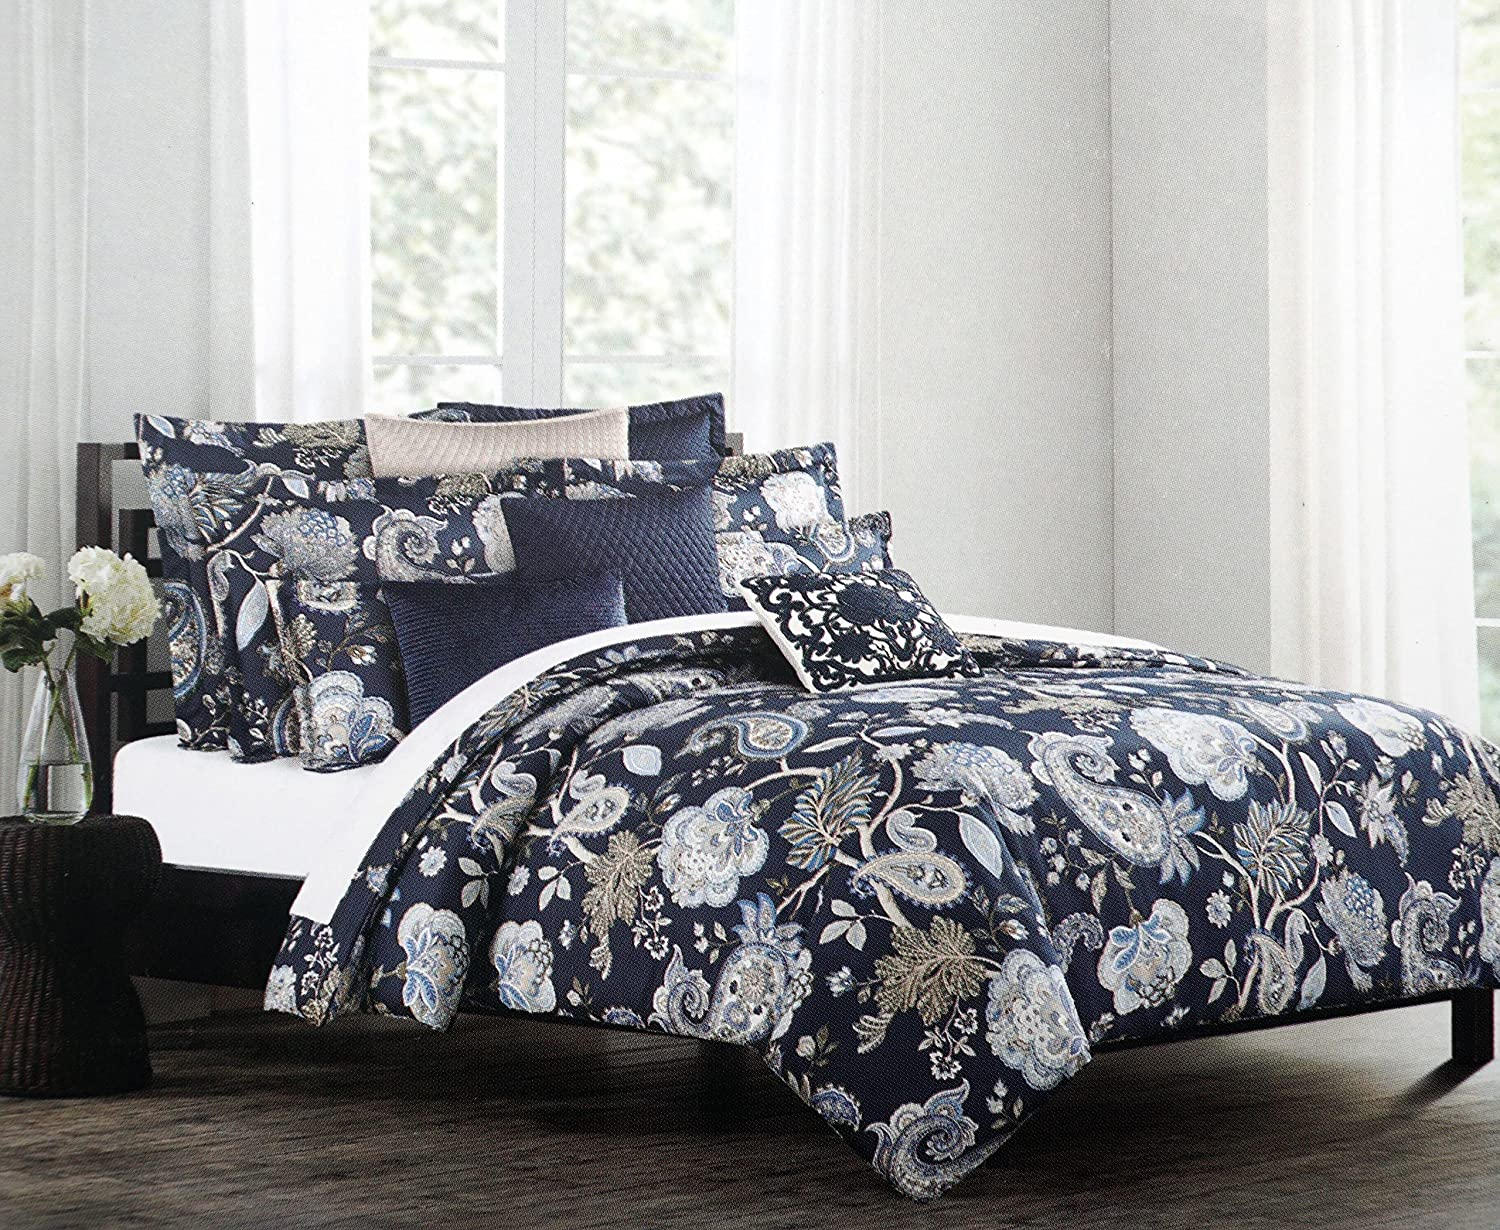 nicole miller bedding 3 piece cotton full queen duvet cover set jacobean 614614598381 ebay. Black Bedroom Furniture Sets. Home Design Ideas